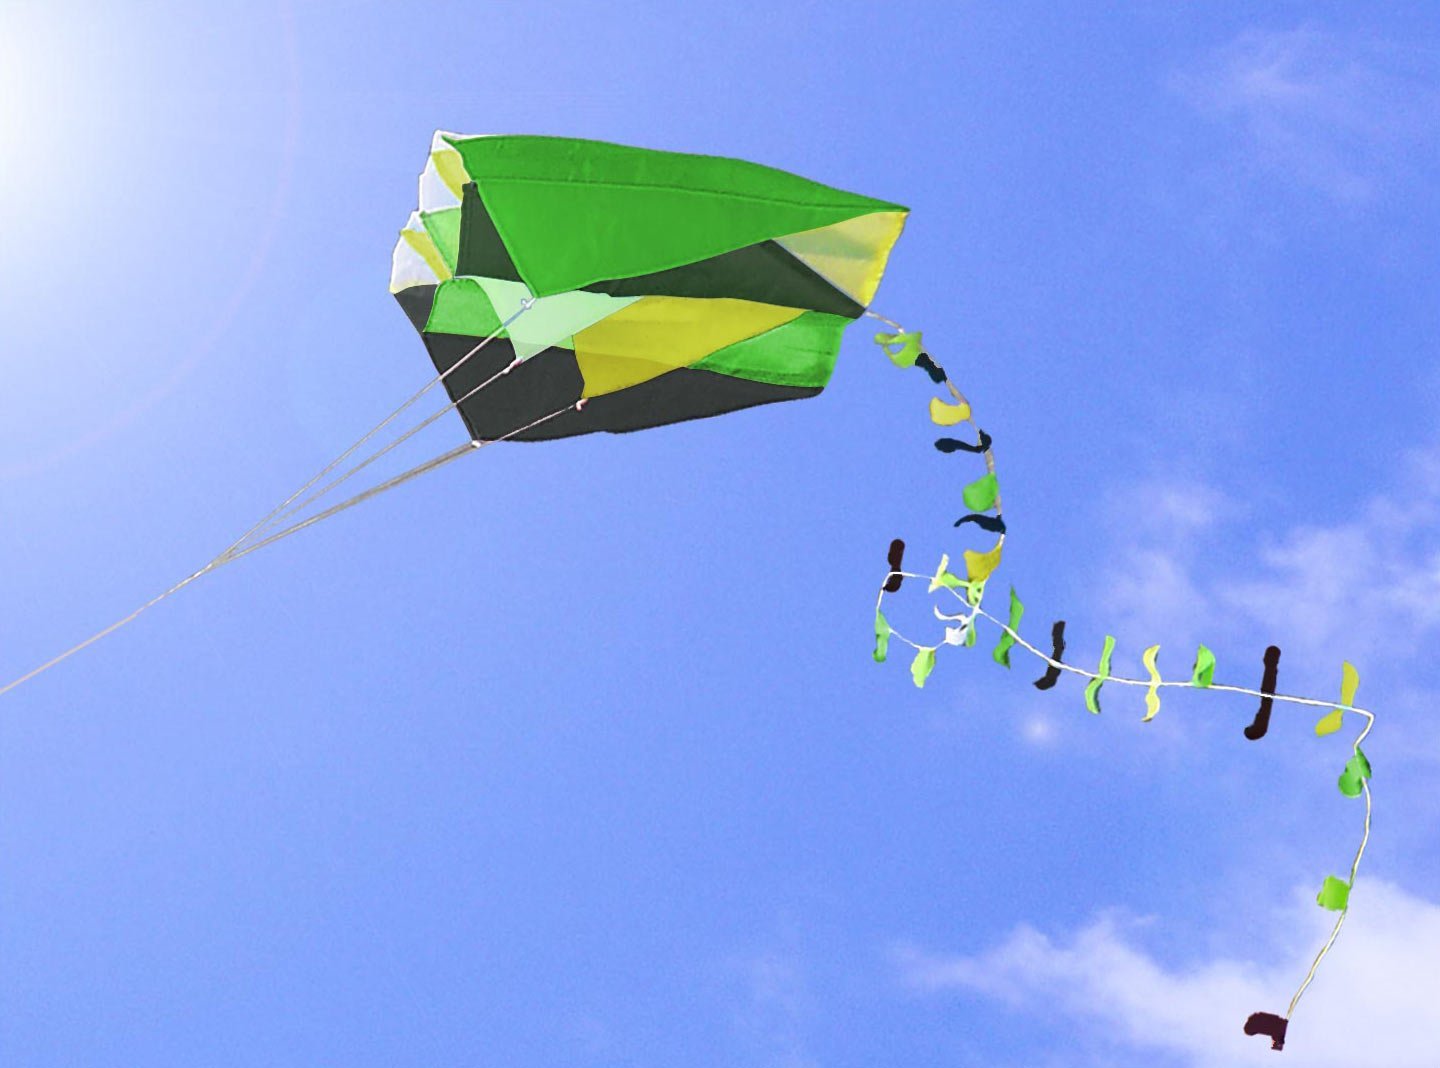 Single Line Parafoil Pocket Kite + Colourful Long Tail in Pouch Easy Outdoor Fun by i.LifeUK i.Life.UK